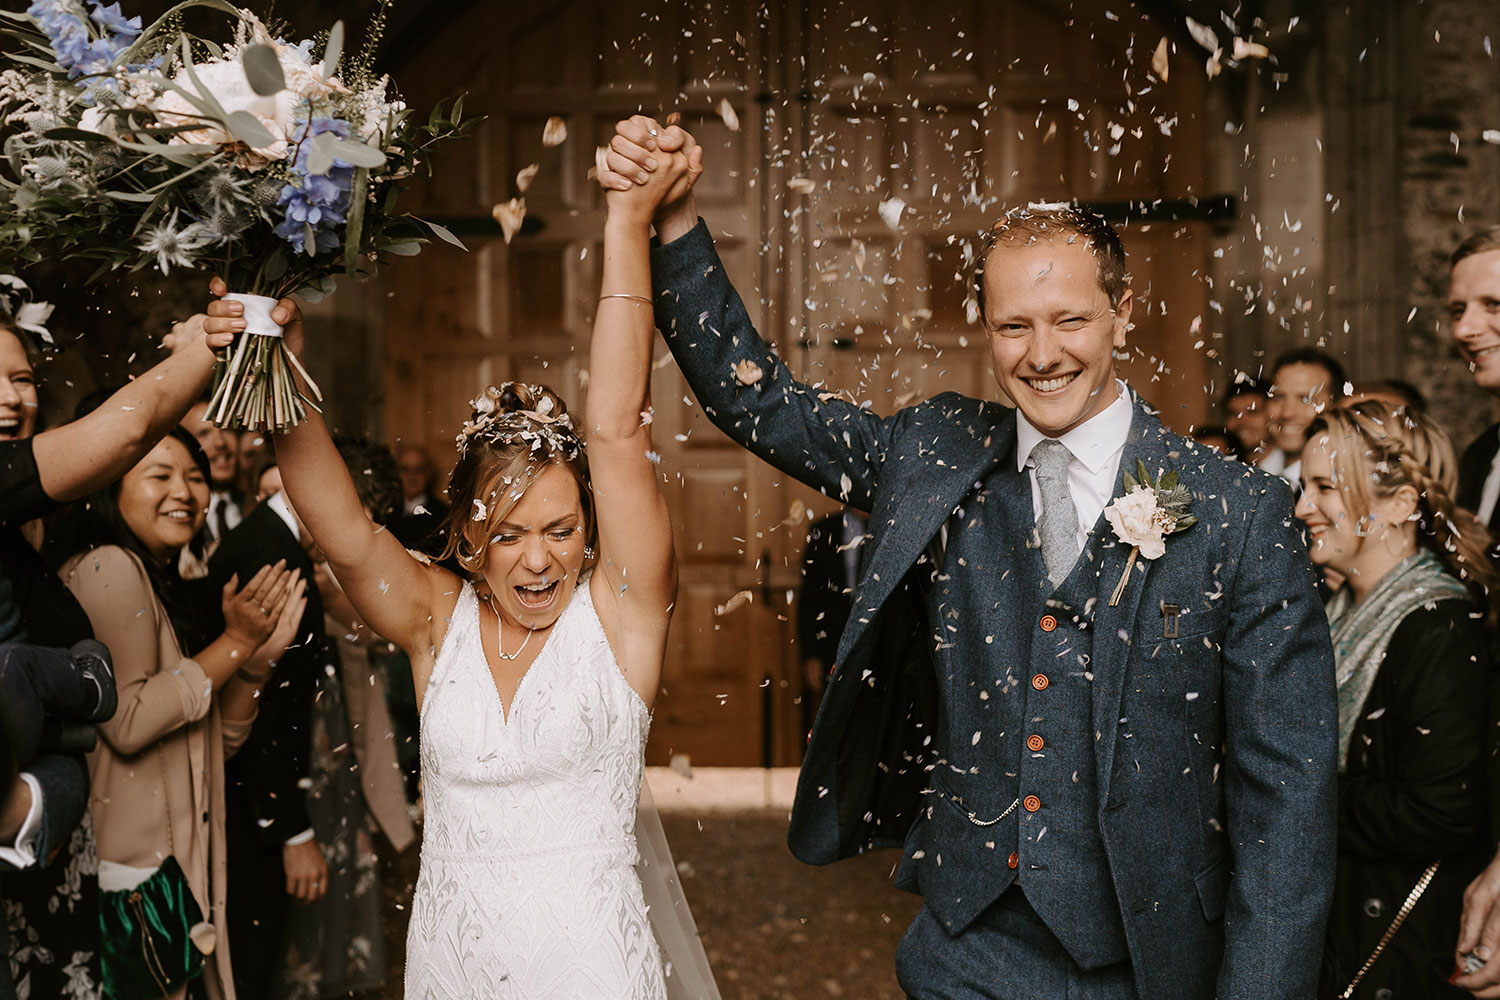 Cheerful bride and groom celebrate holding their hands in the air during confetti throwing